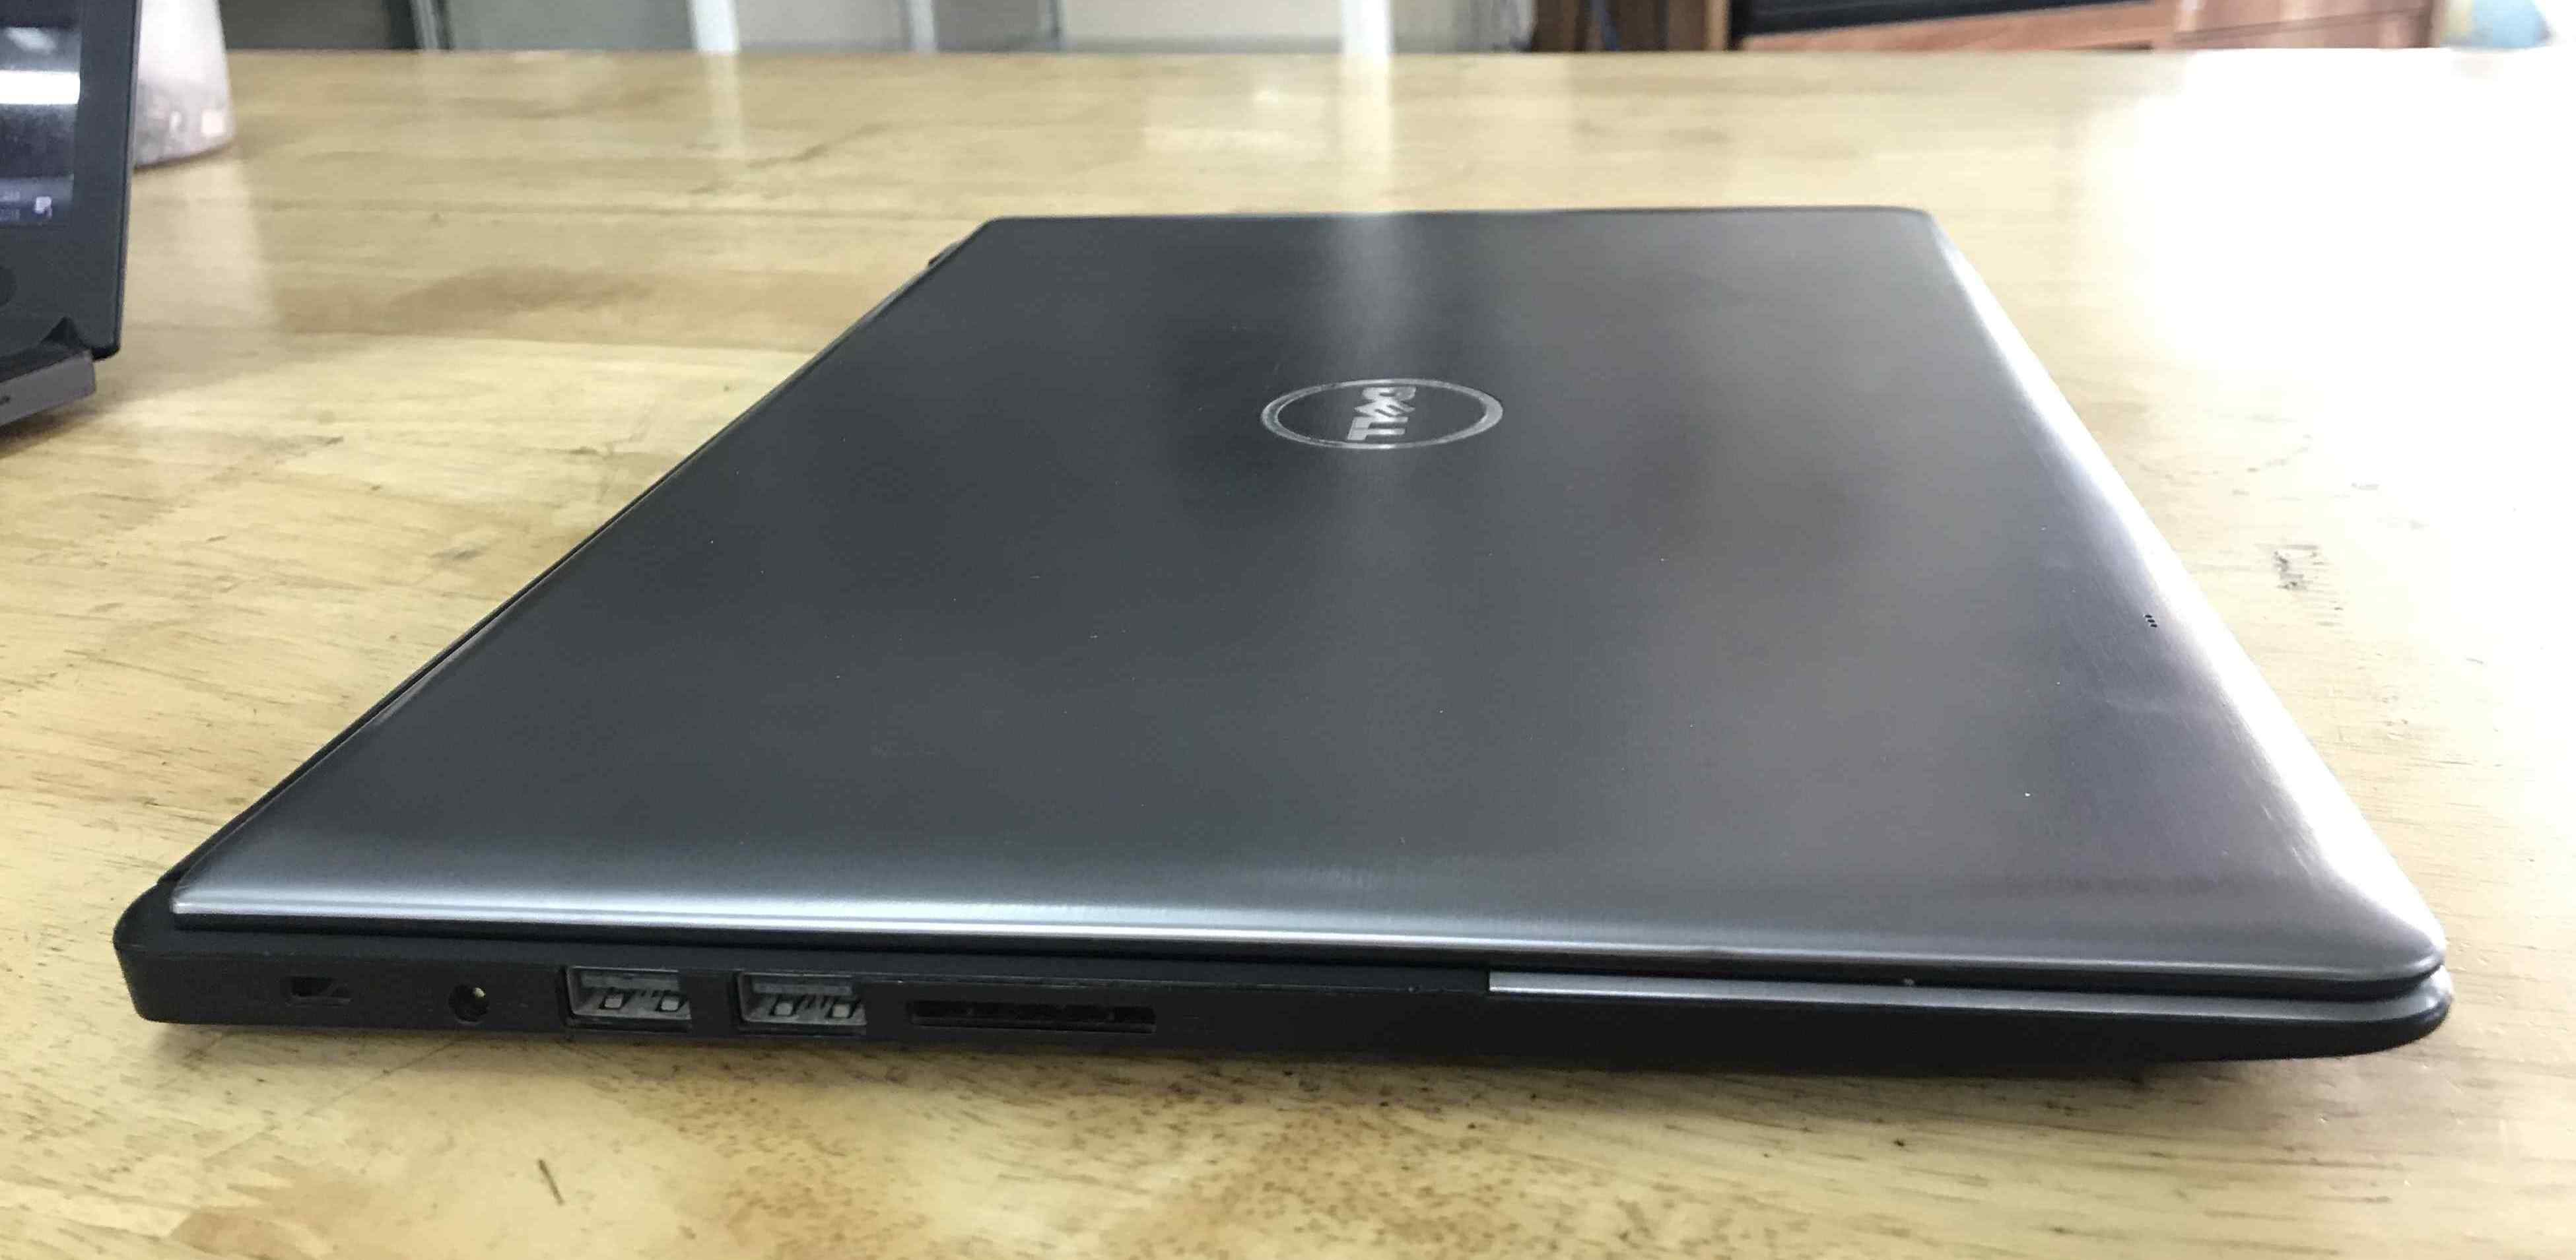 bán laptop cũ dell vostro 5470